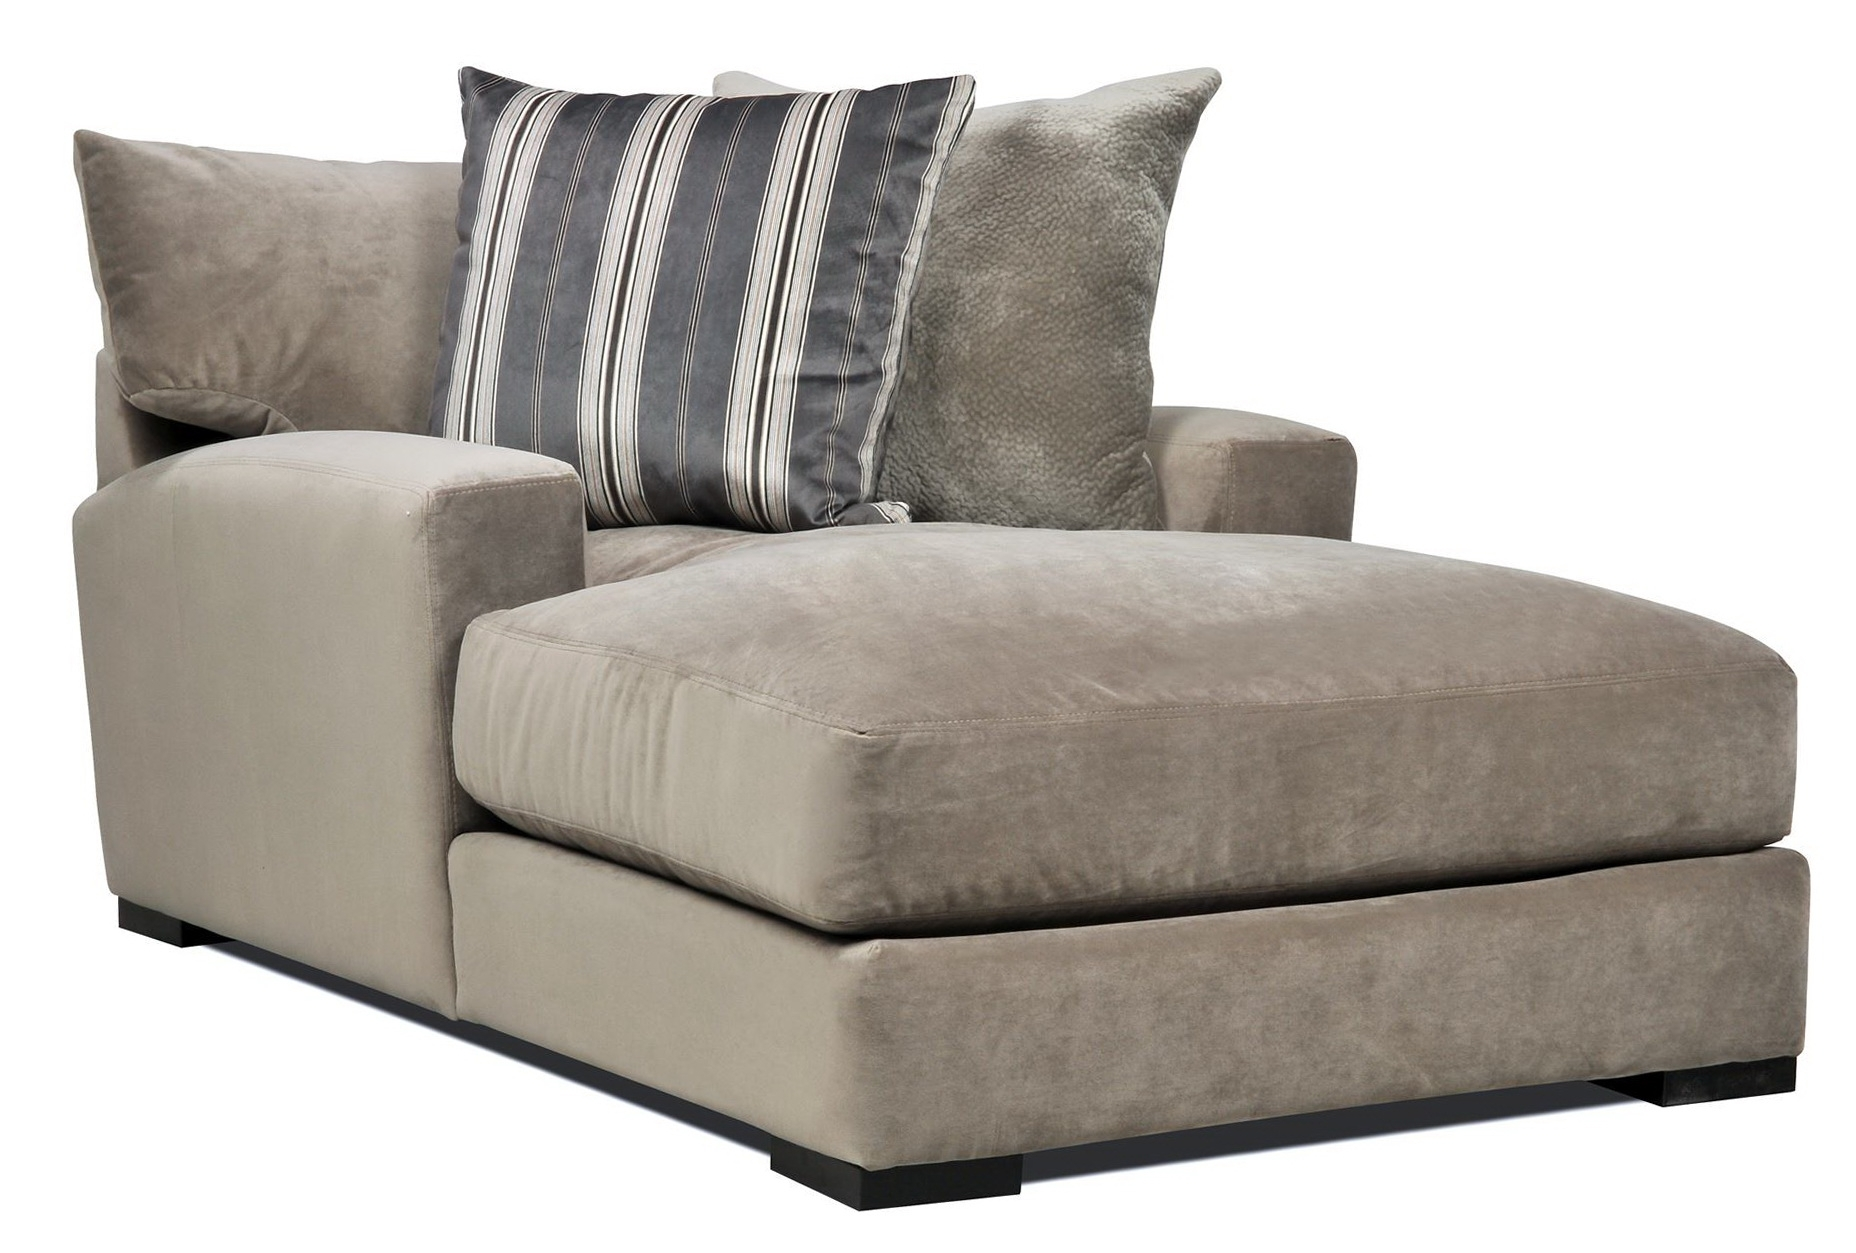 Popular Chaise Lounges With Arms Intended For Double Wide Chaise Lounge Indoor With 2 Cushions (View 8 of 15)